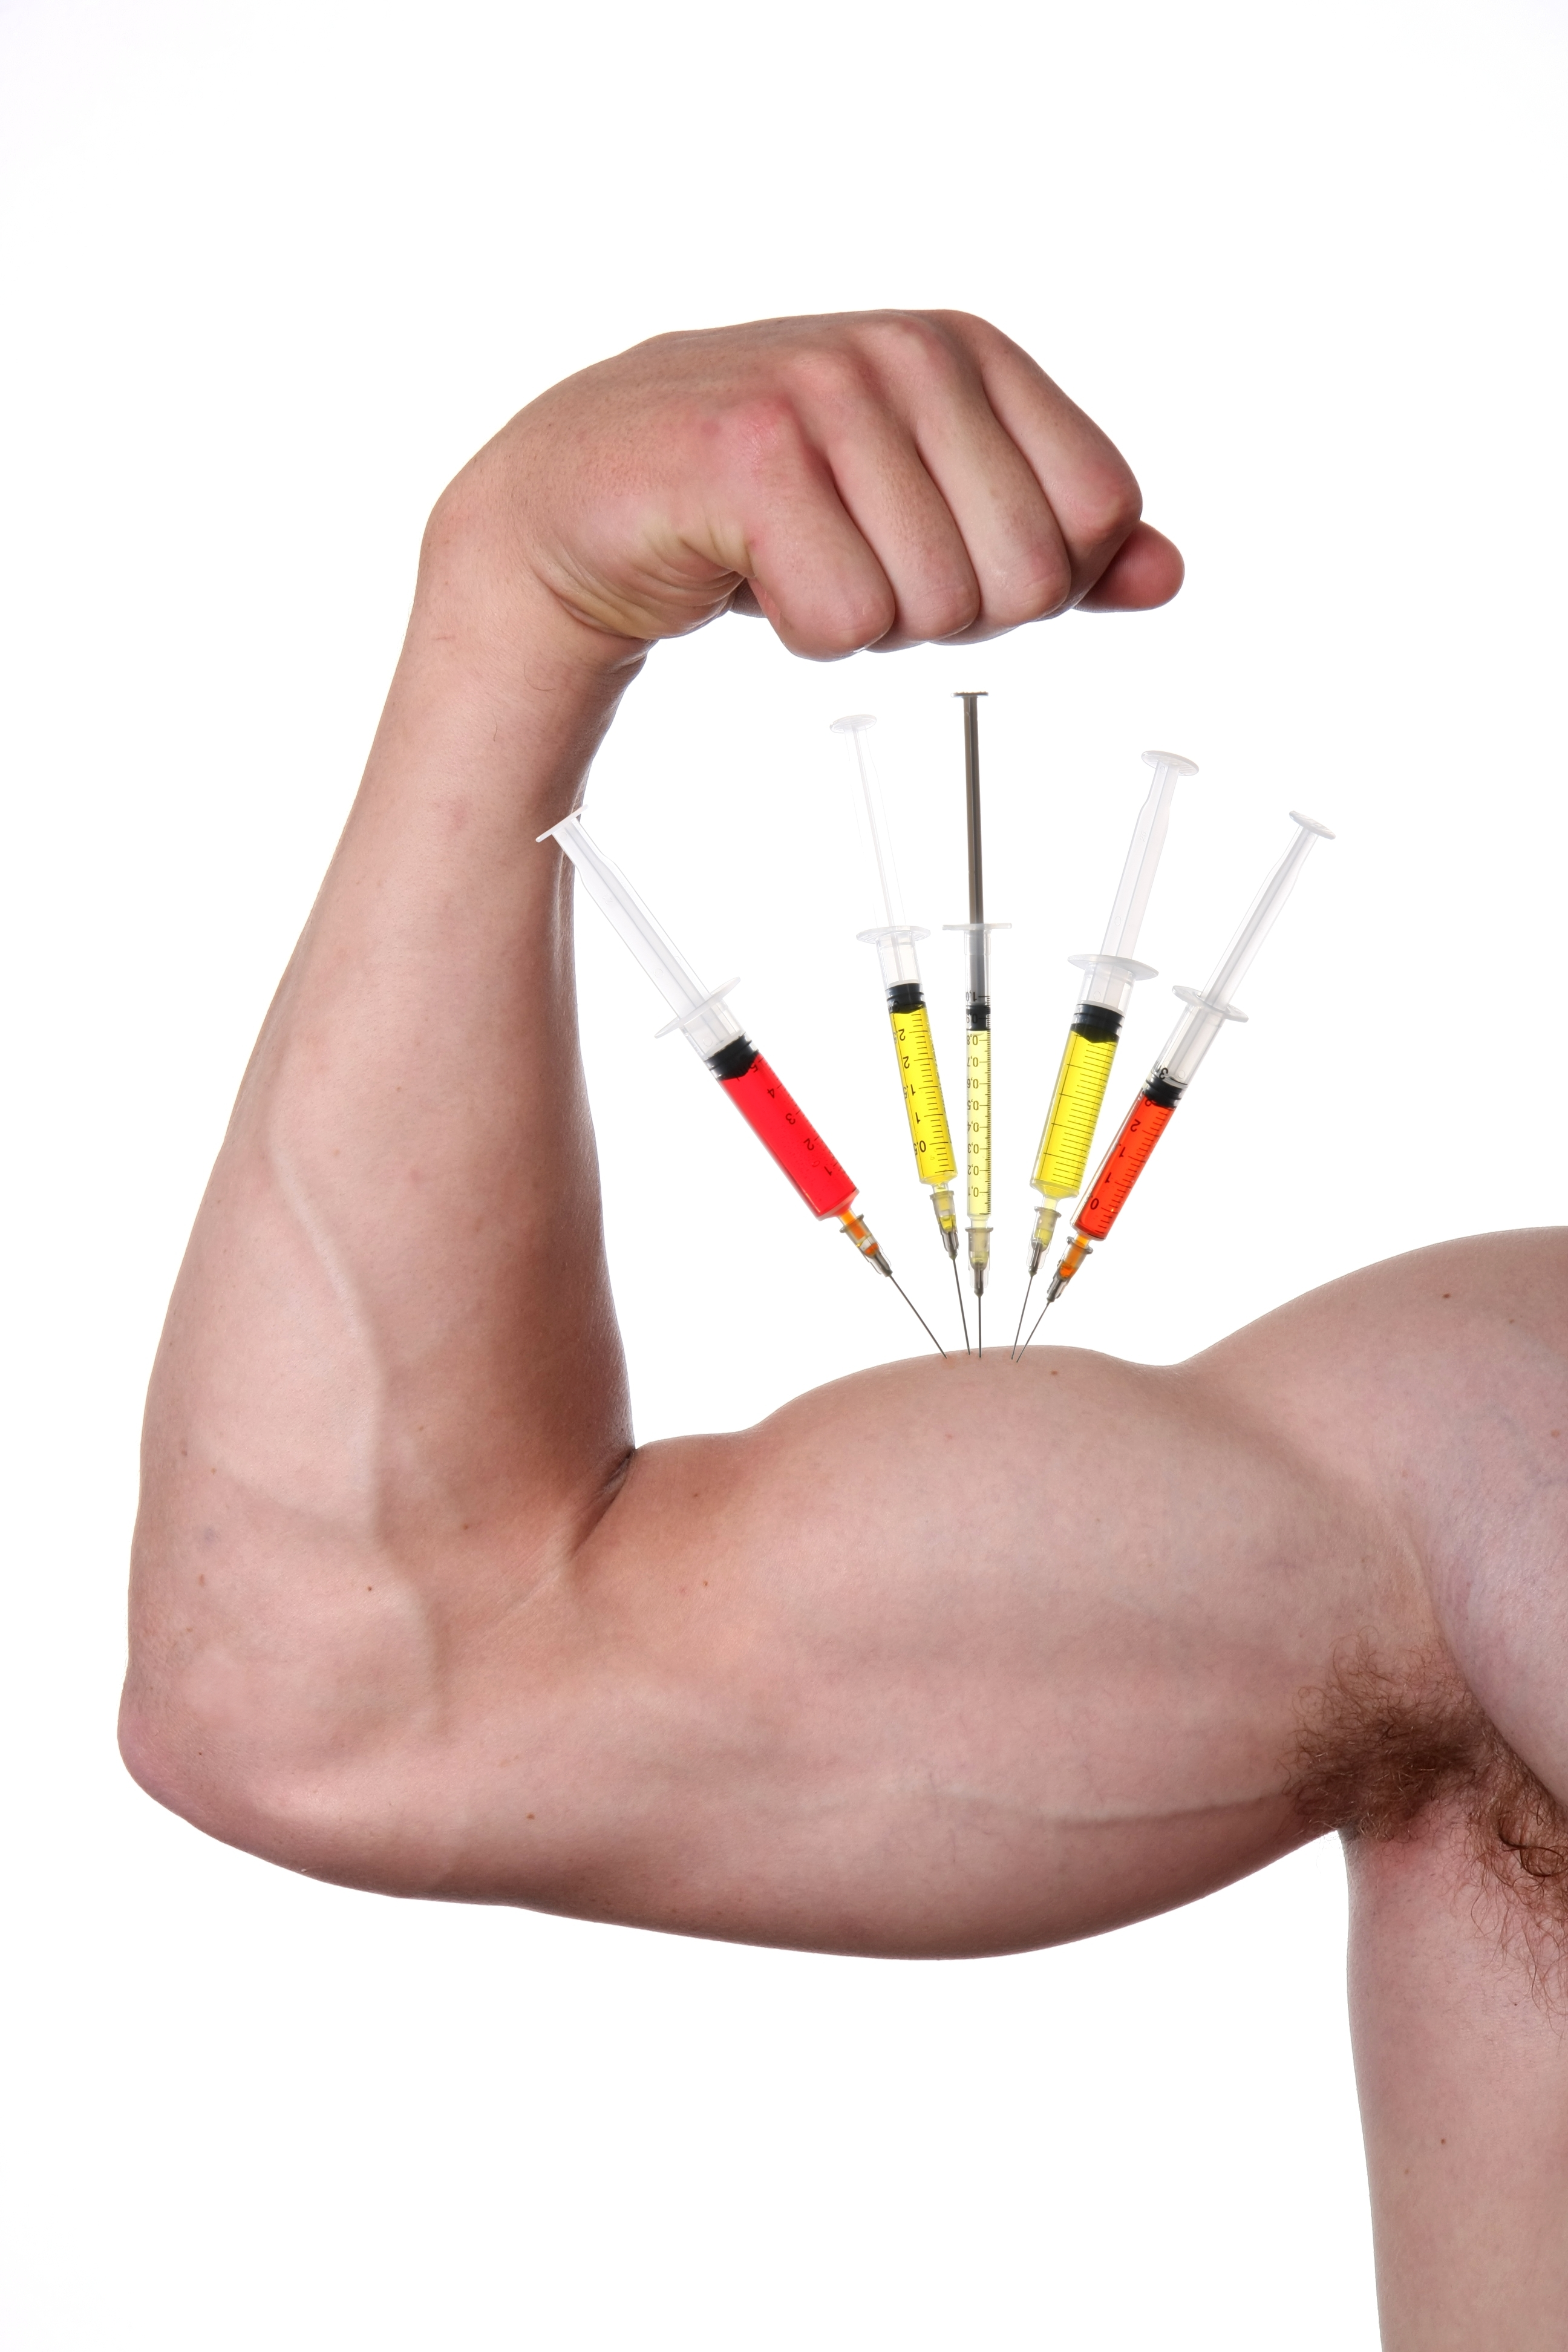 steroids in sports research paper outline << coursework academic steroids in sports research paper outline